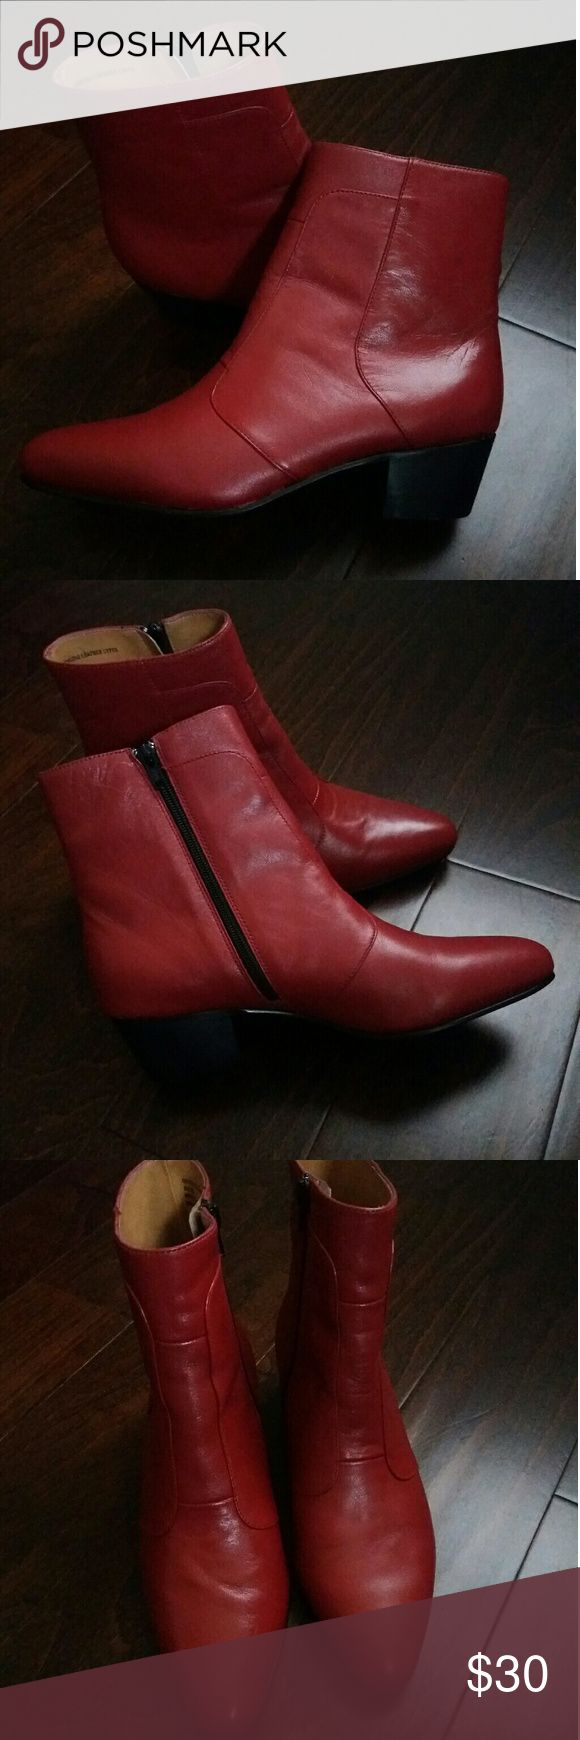 Giorgio Brutini Boots Red leather cuban heel boots new in box. Giorgio Brutini Shoes Ankle Boots & Booties